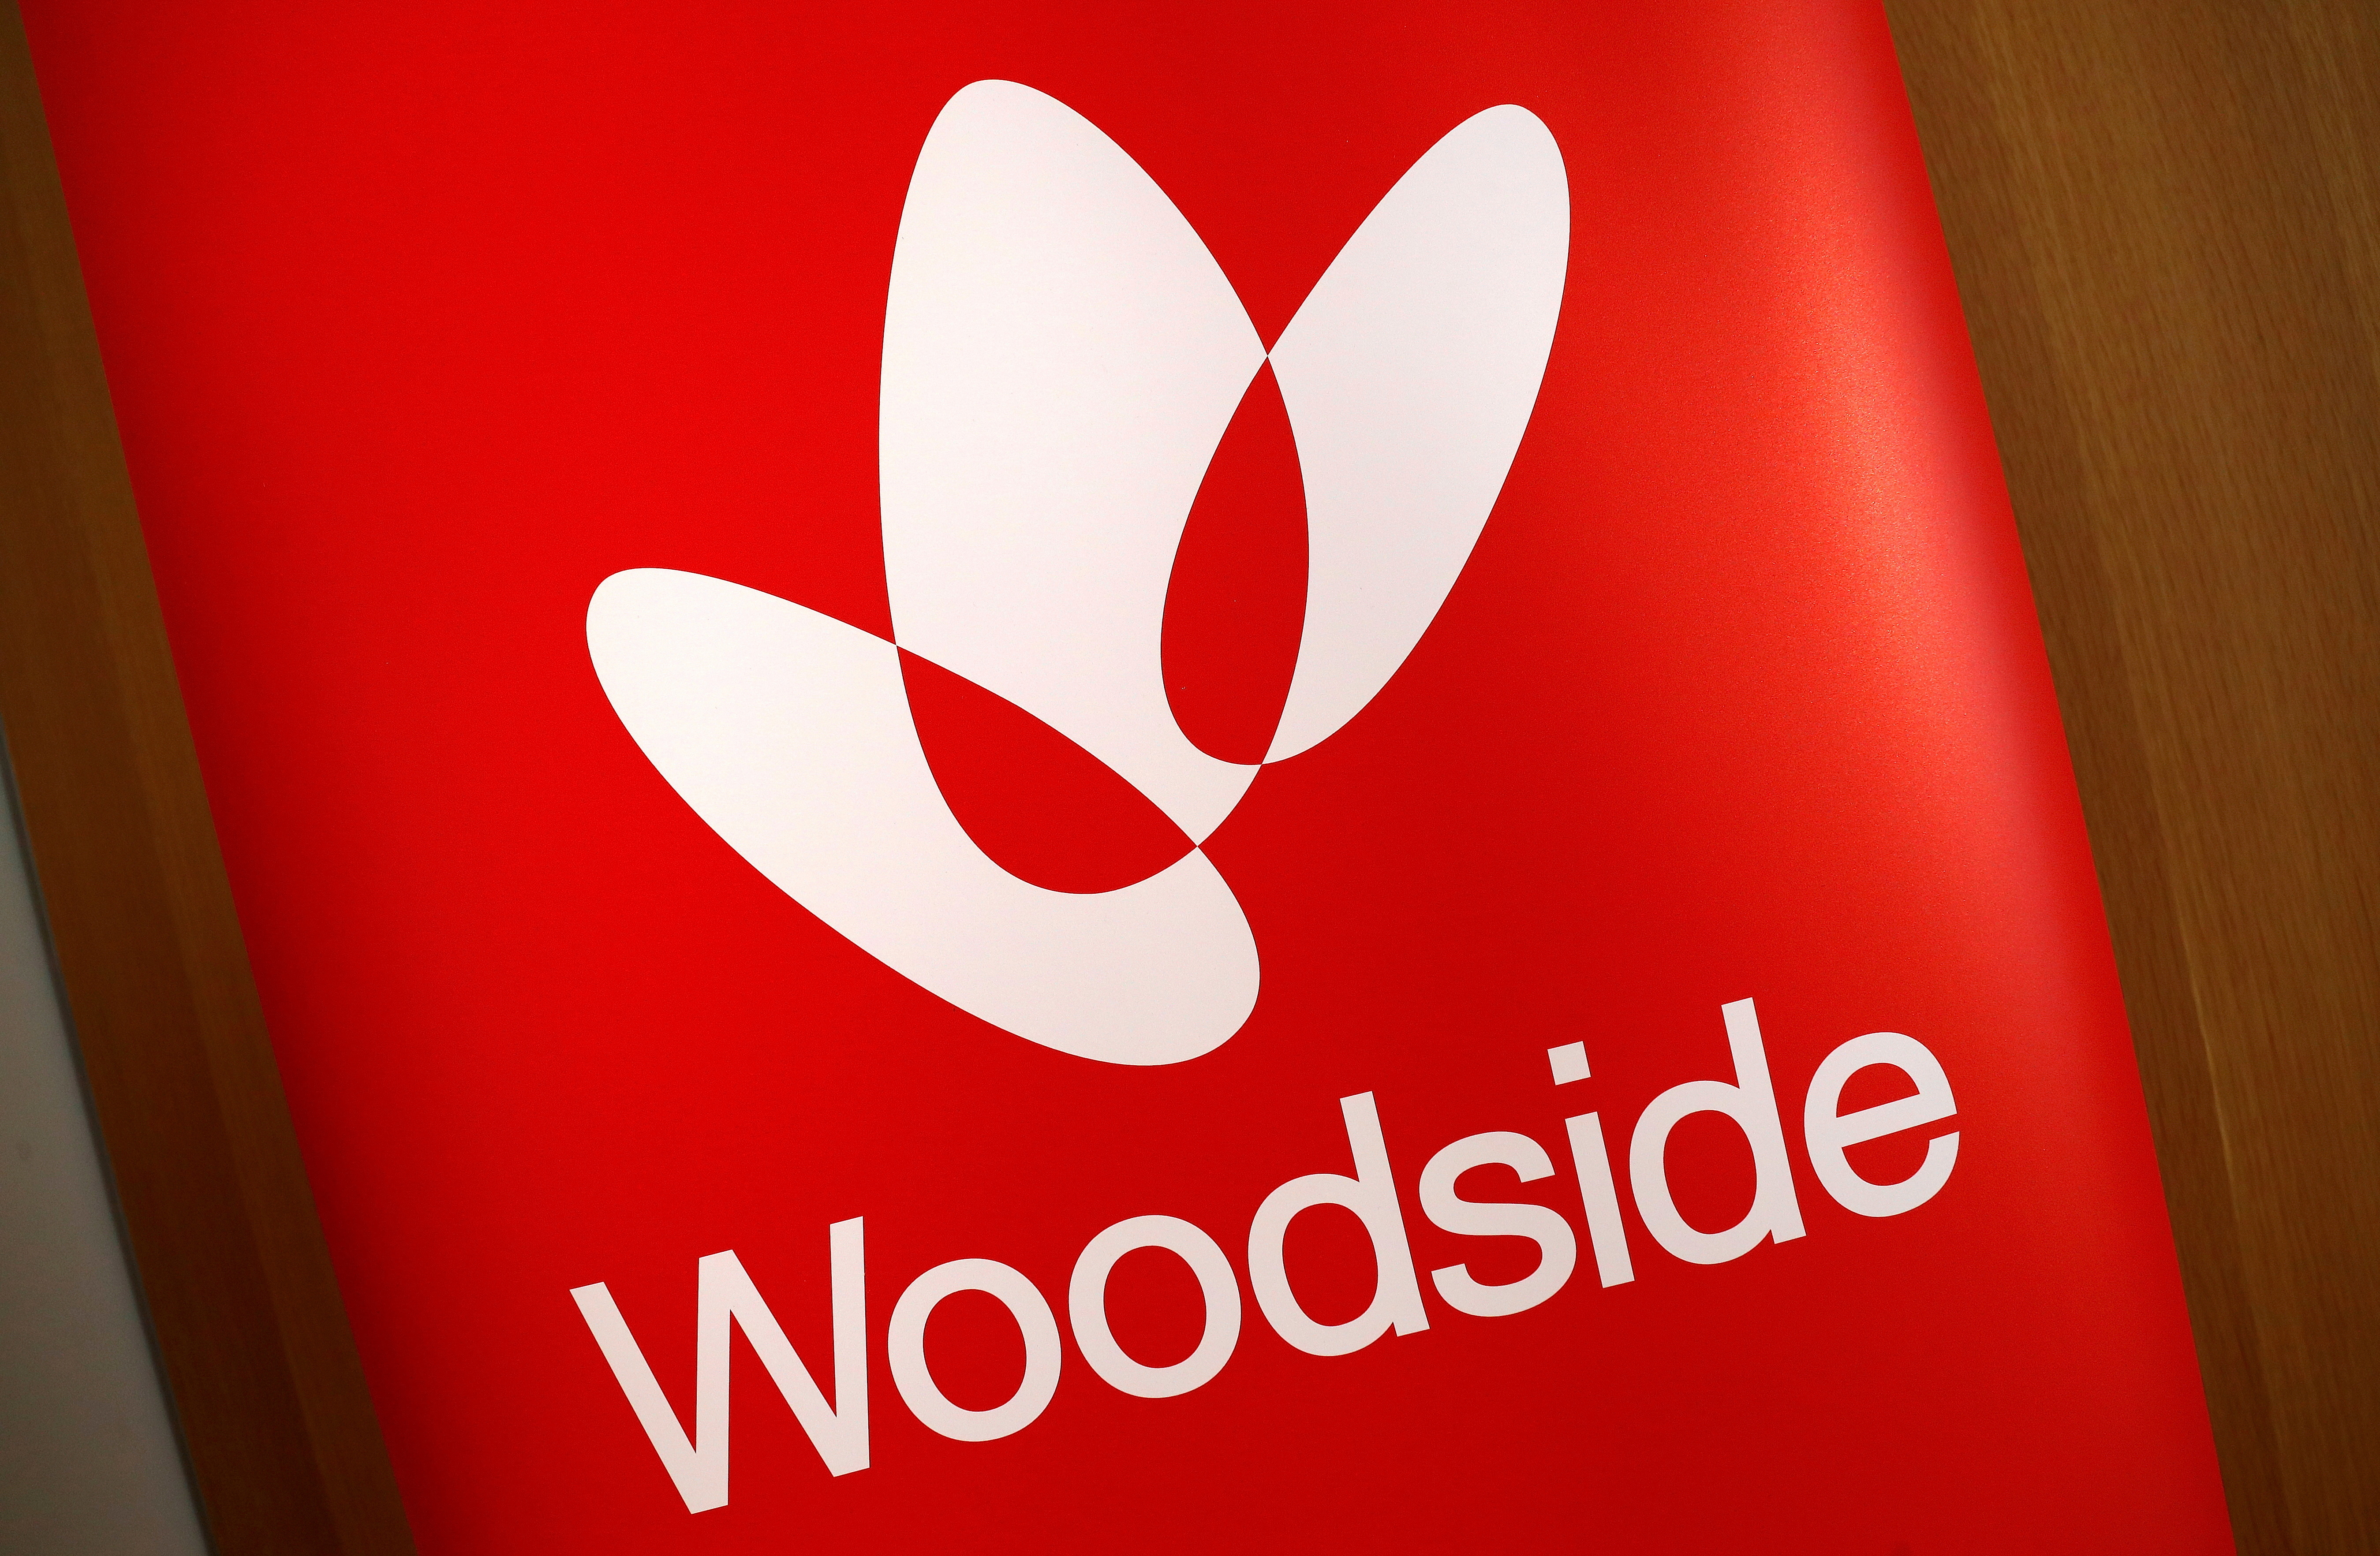 The logo for Woodside Petroleum, Australia's top independent oil and gas company, adorns a promotional poster on display at a briefing for investors in Sydney, Australia, May 23, 2018.   REUTERS/David Gray/File Photo